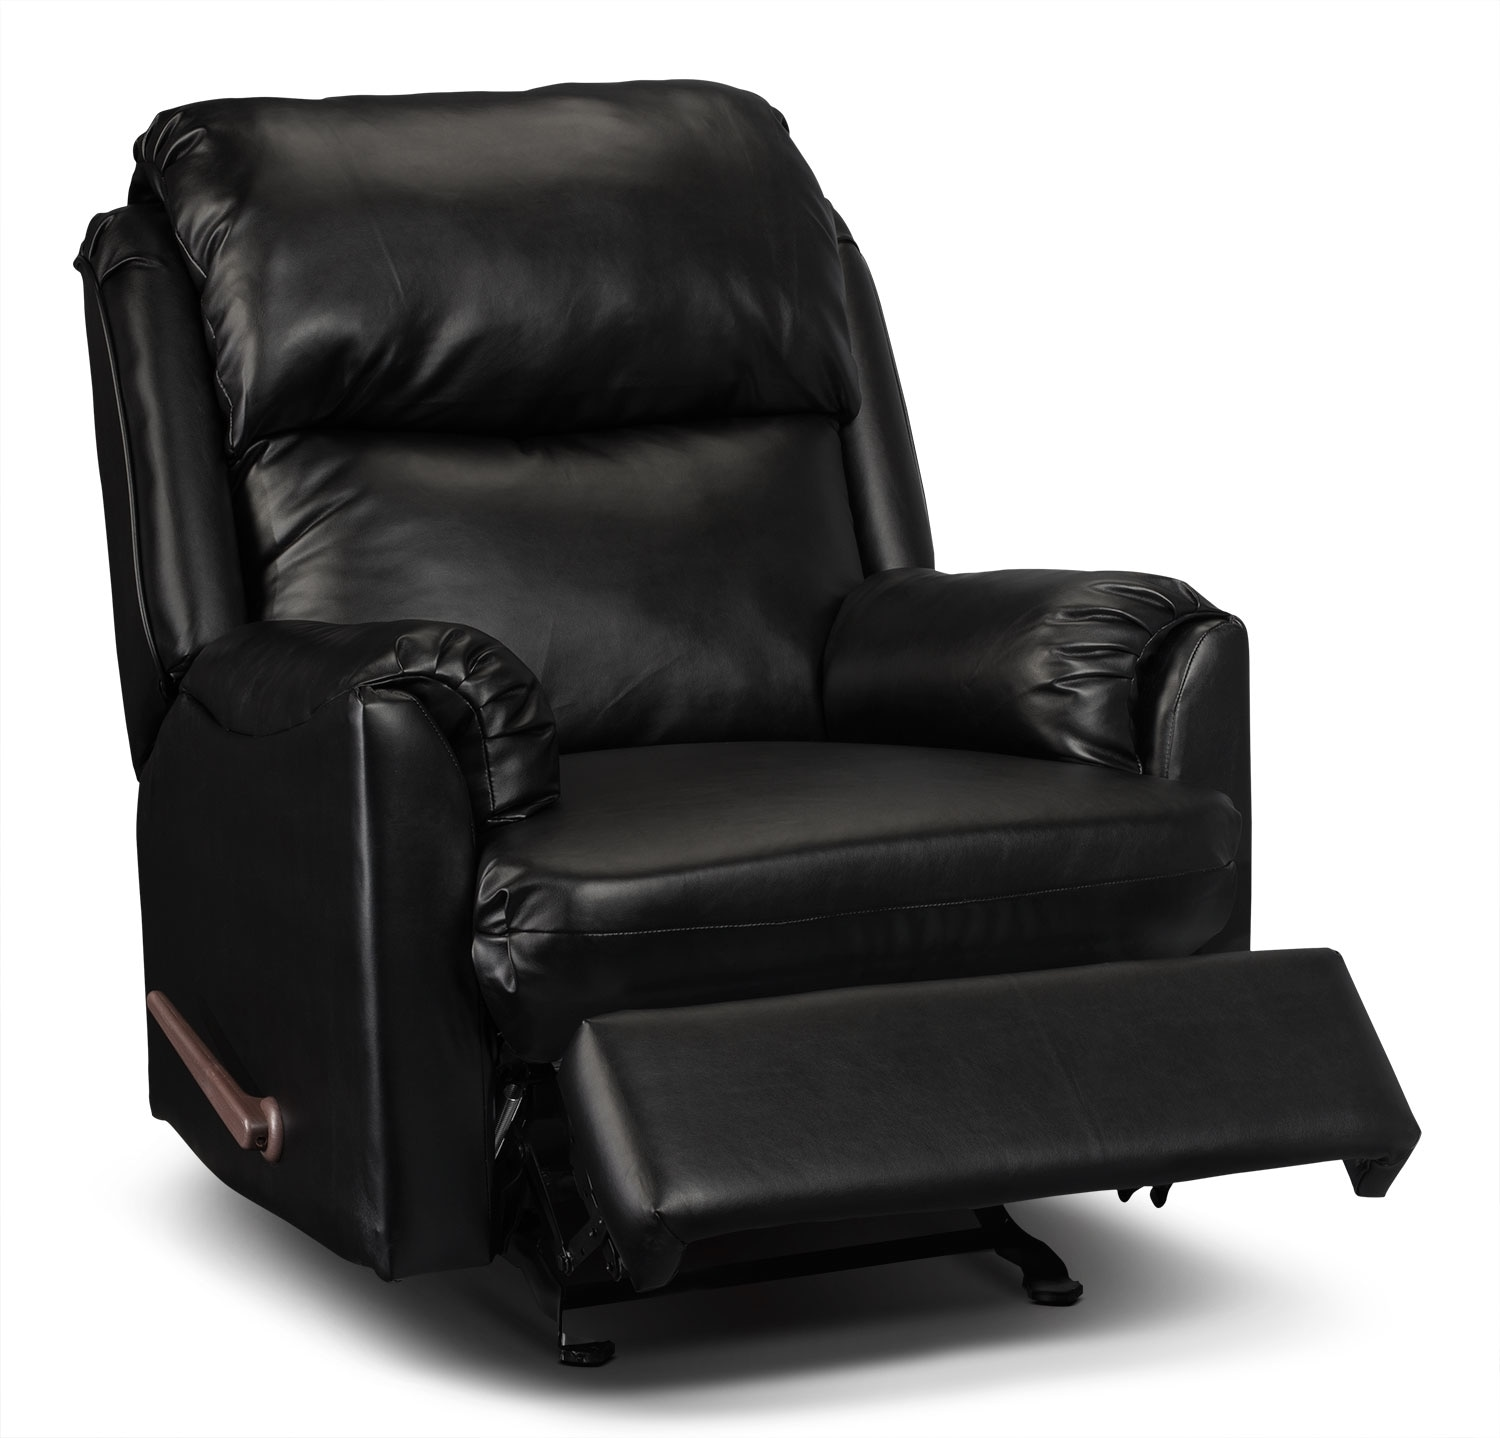 Faux Leather Chair Drogba Faux Leather Recliner Black The Brick